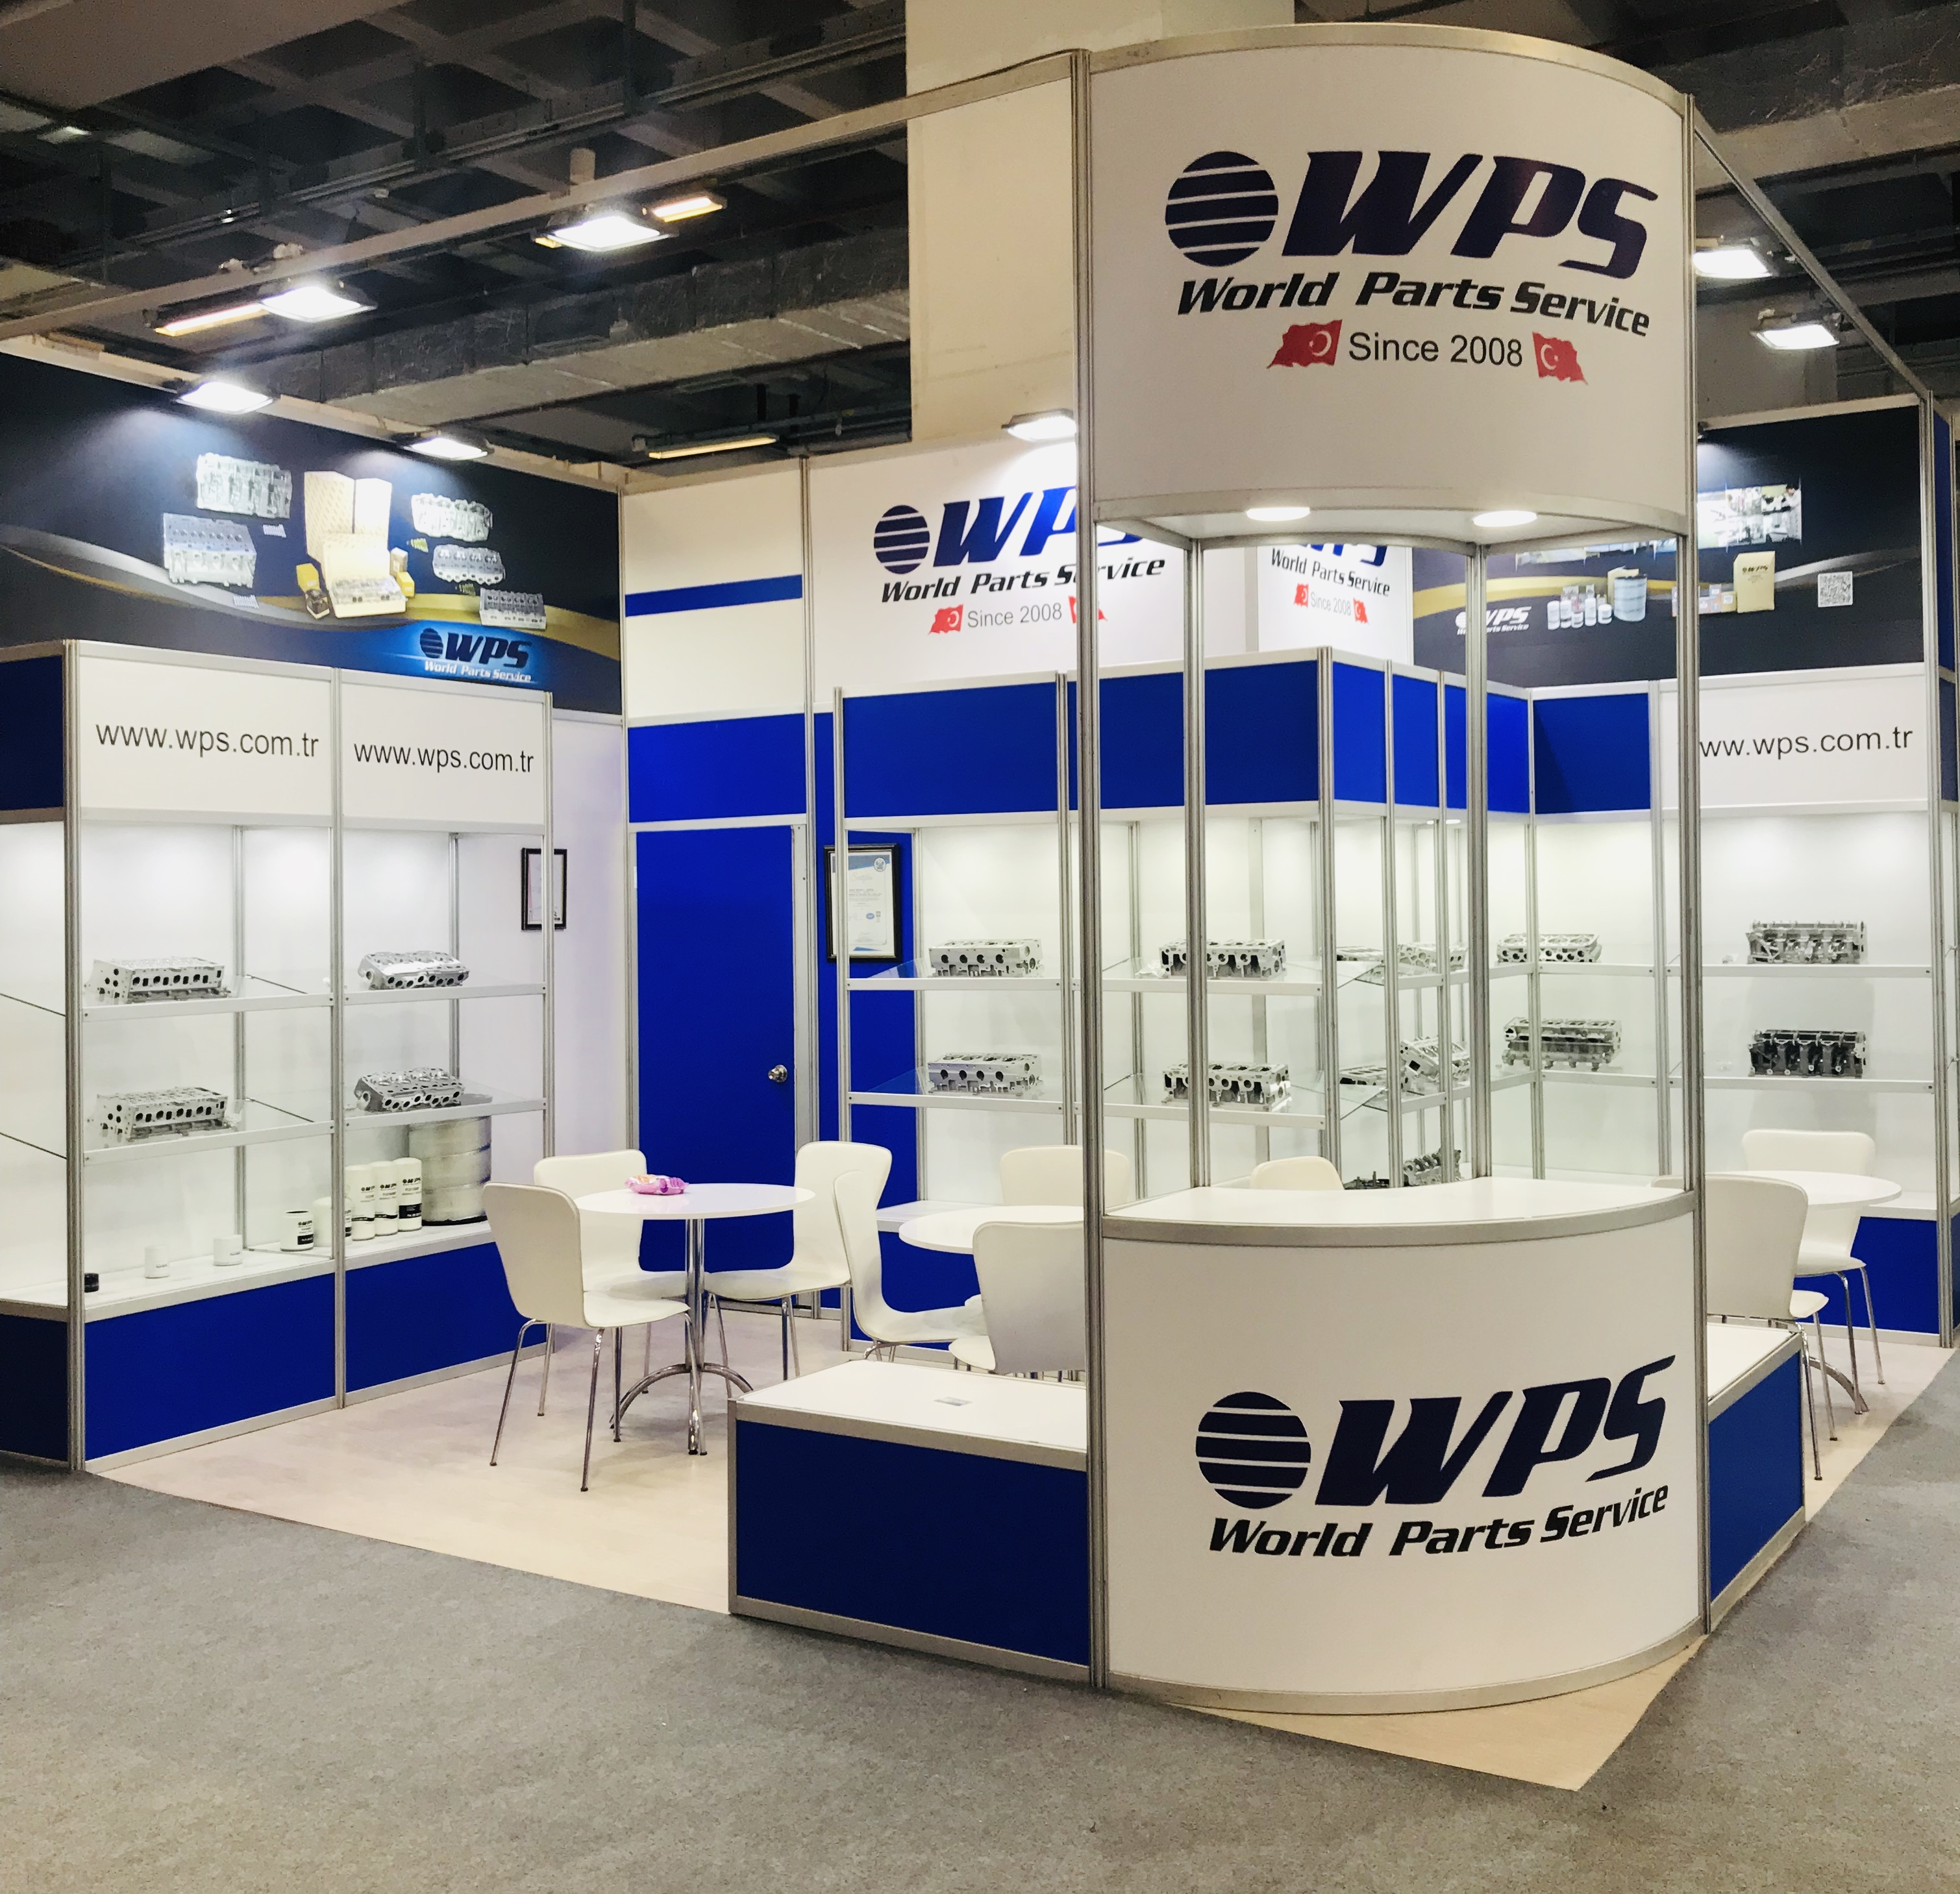 AUTOMECHANİKA İSTANBUL 2019 || WPS Word Parts Service